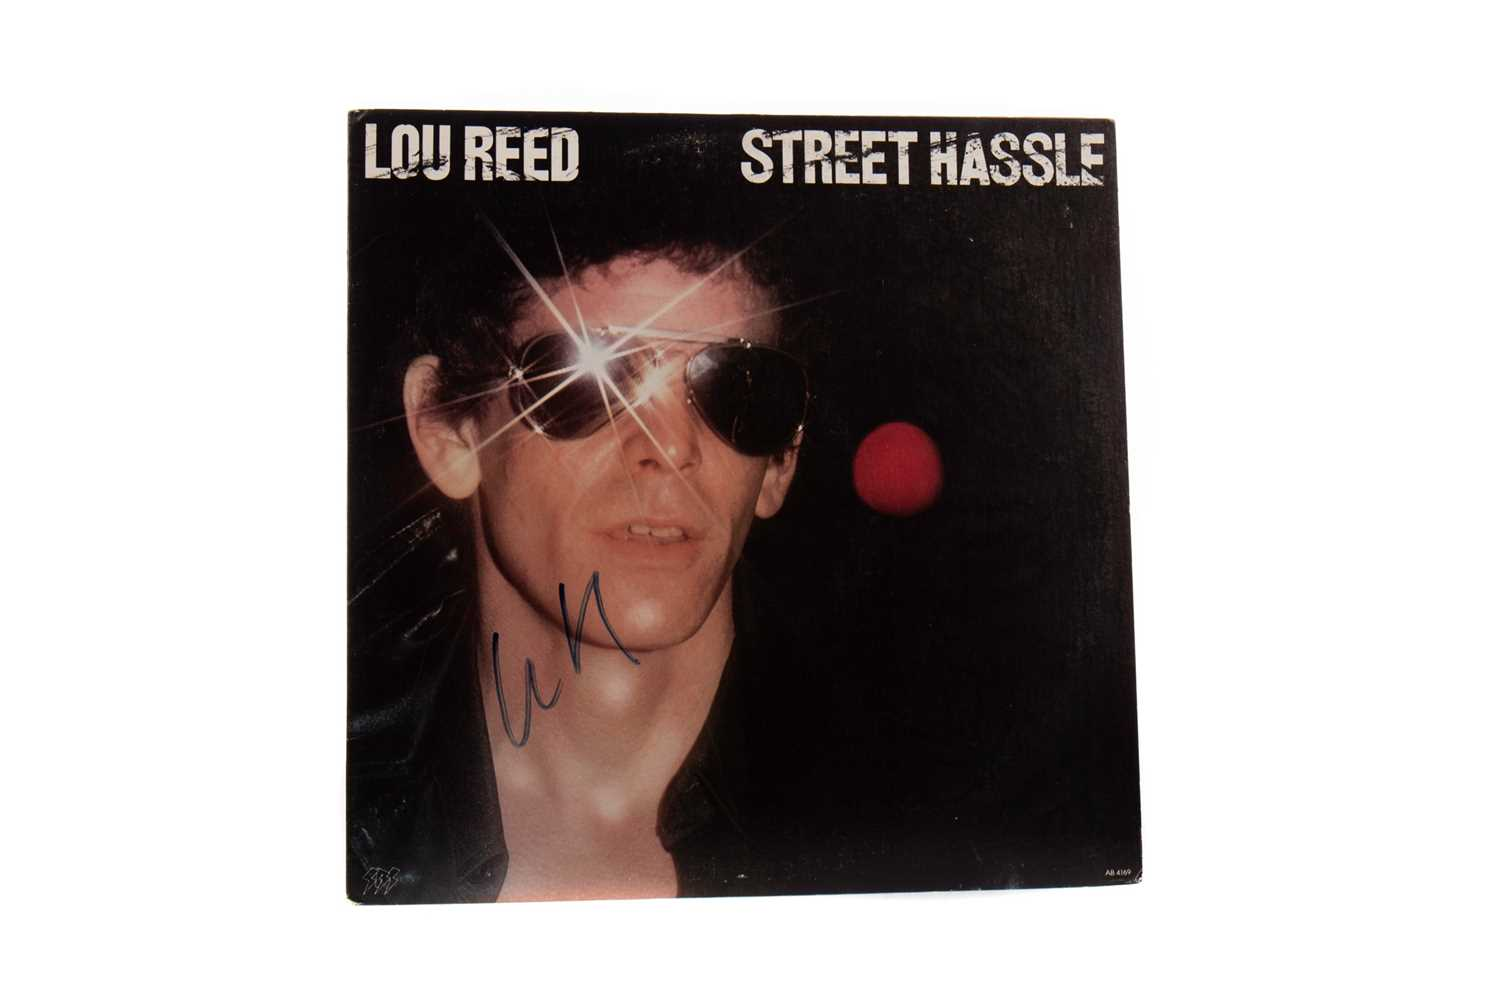 Lot 762 - A LOU REED STREET HASSLE LP RECORD